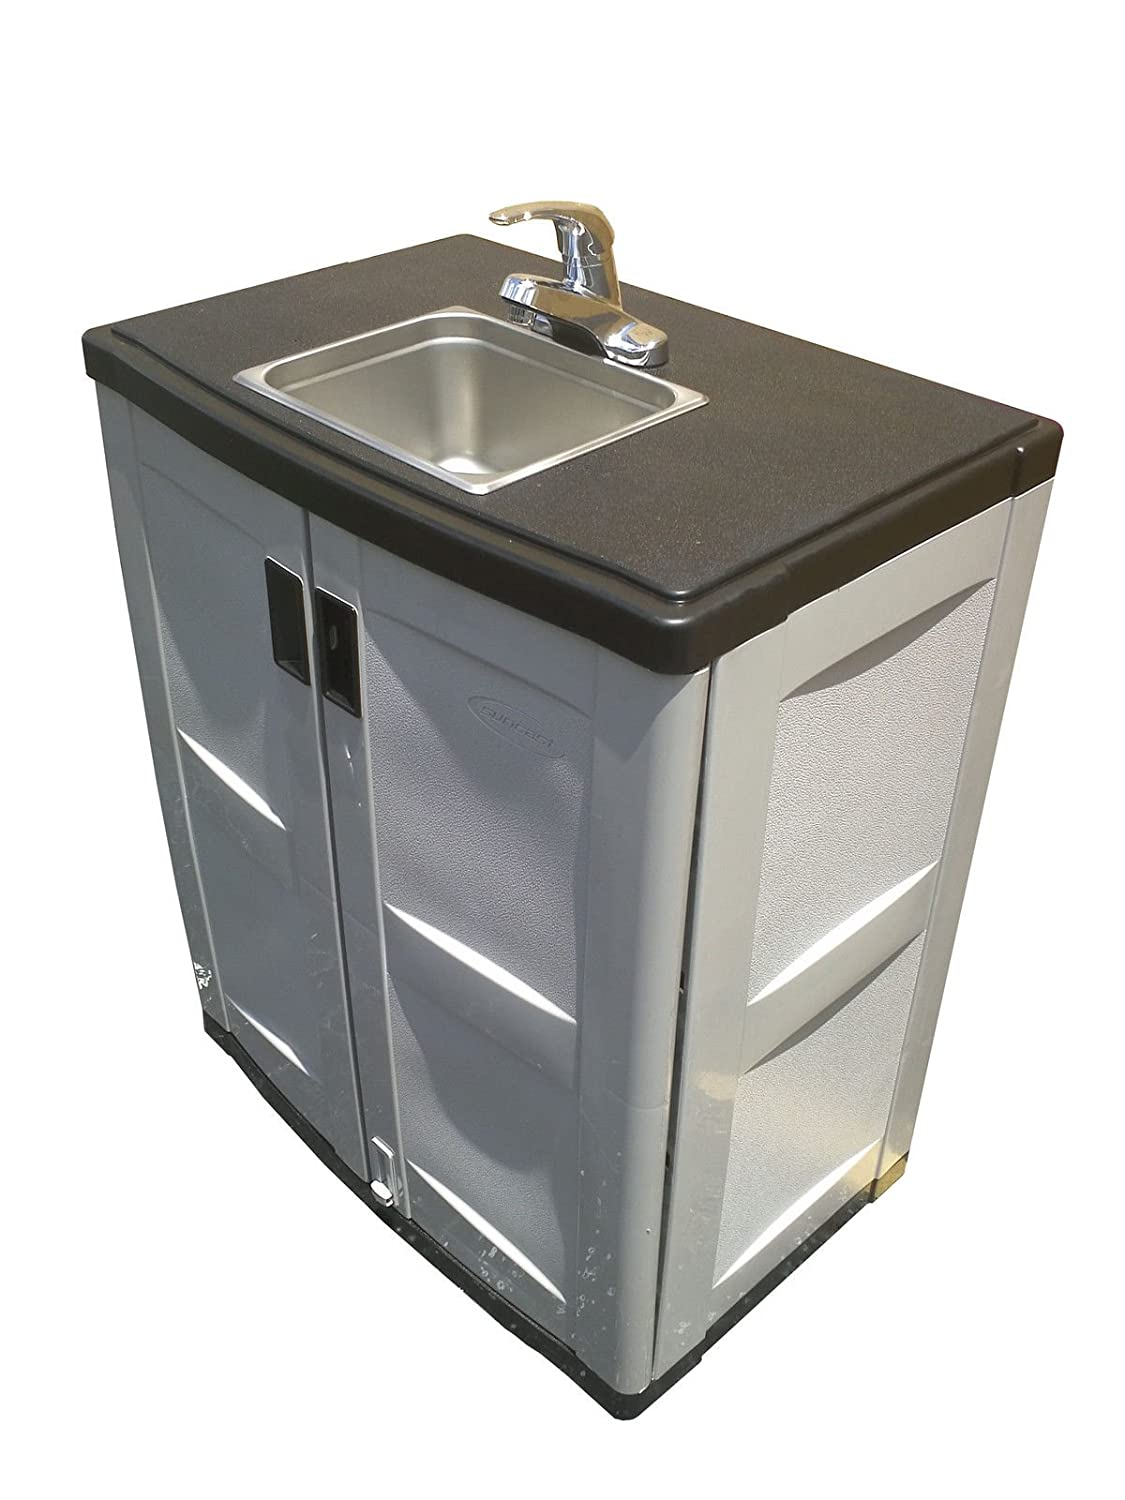 Portable Sink Self Contained Hand Wash Station With Cold Electronicsr 61647622 3way Norcold Refrigerator Circuit Board And Hot Water Appliances